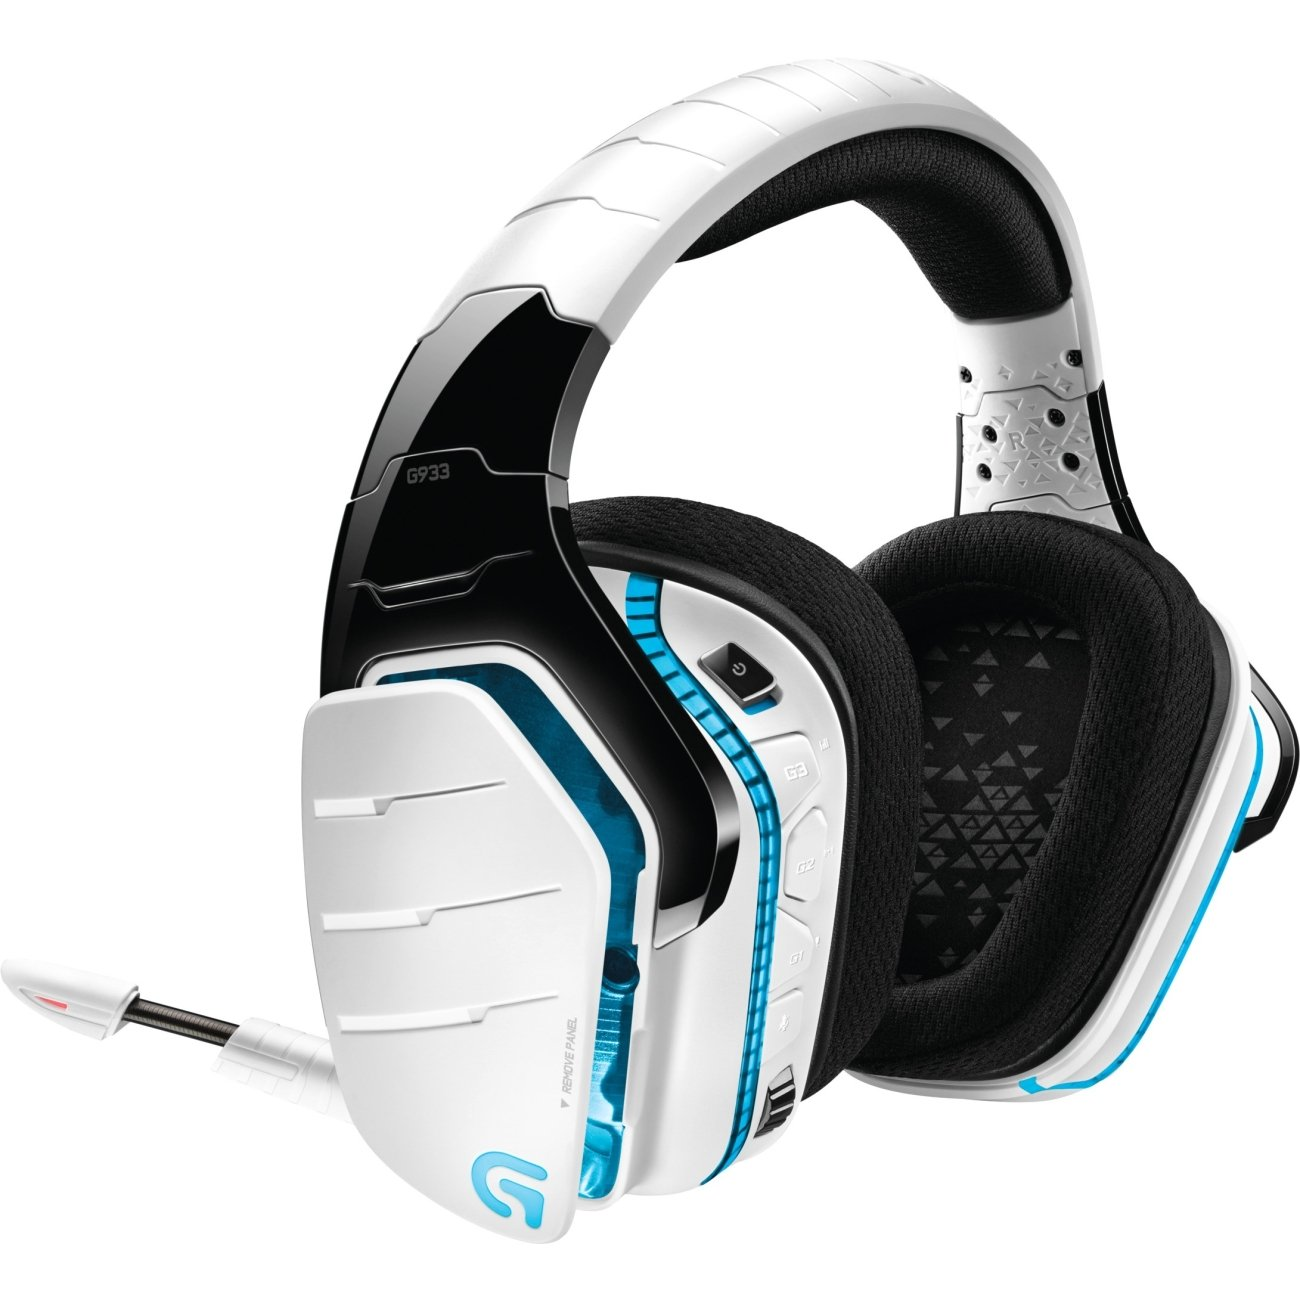 로지텍 G933 무선 헤드폰, 아르테미스 스펙트럼 Logitech G933 Artemis Spectrum, Wireless RGB 7.1 Dolby and DTS Headphone Surround Sound Gaming Headset, White